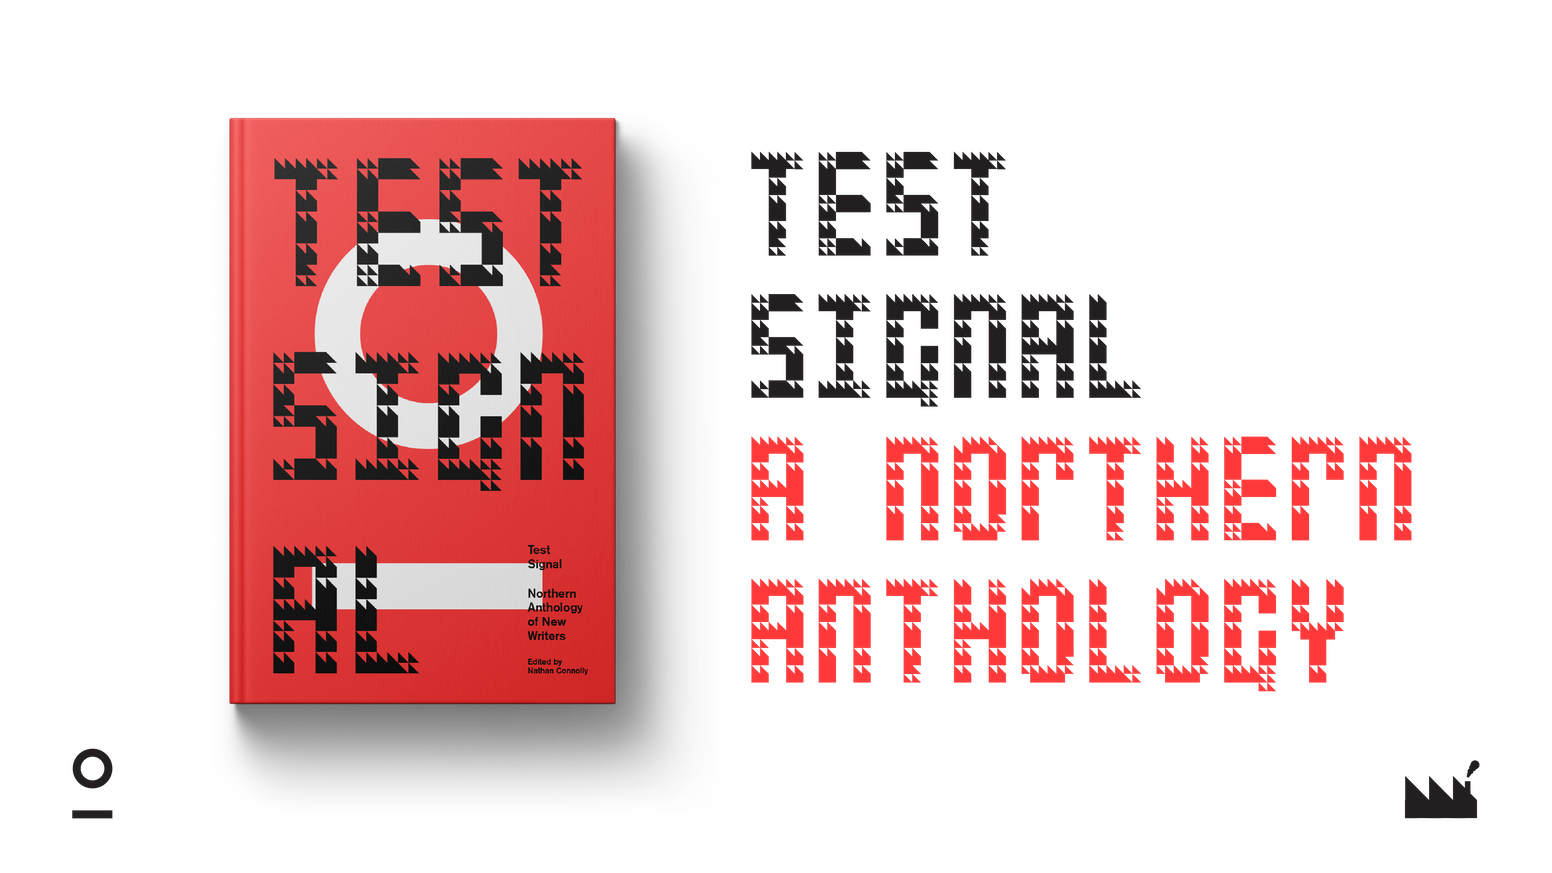 A biennial anthology to celebrate northern writing and provide routes to publication. Produced in partnership with New Writing North.